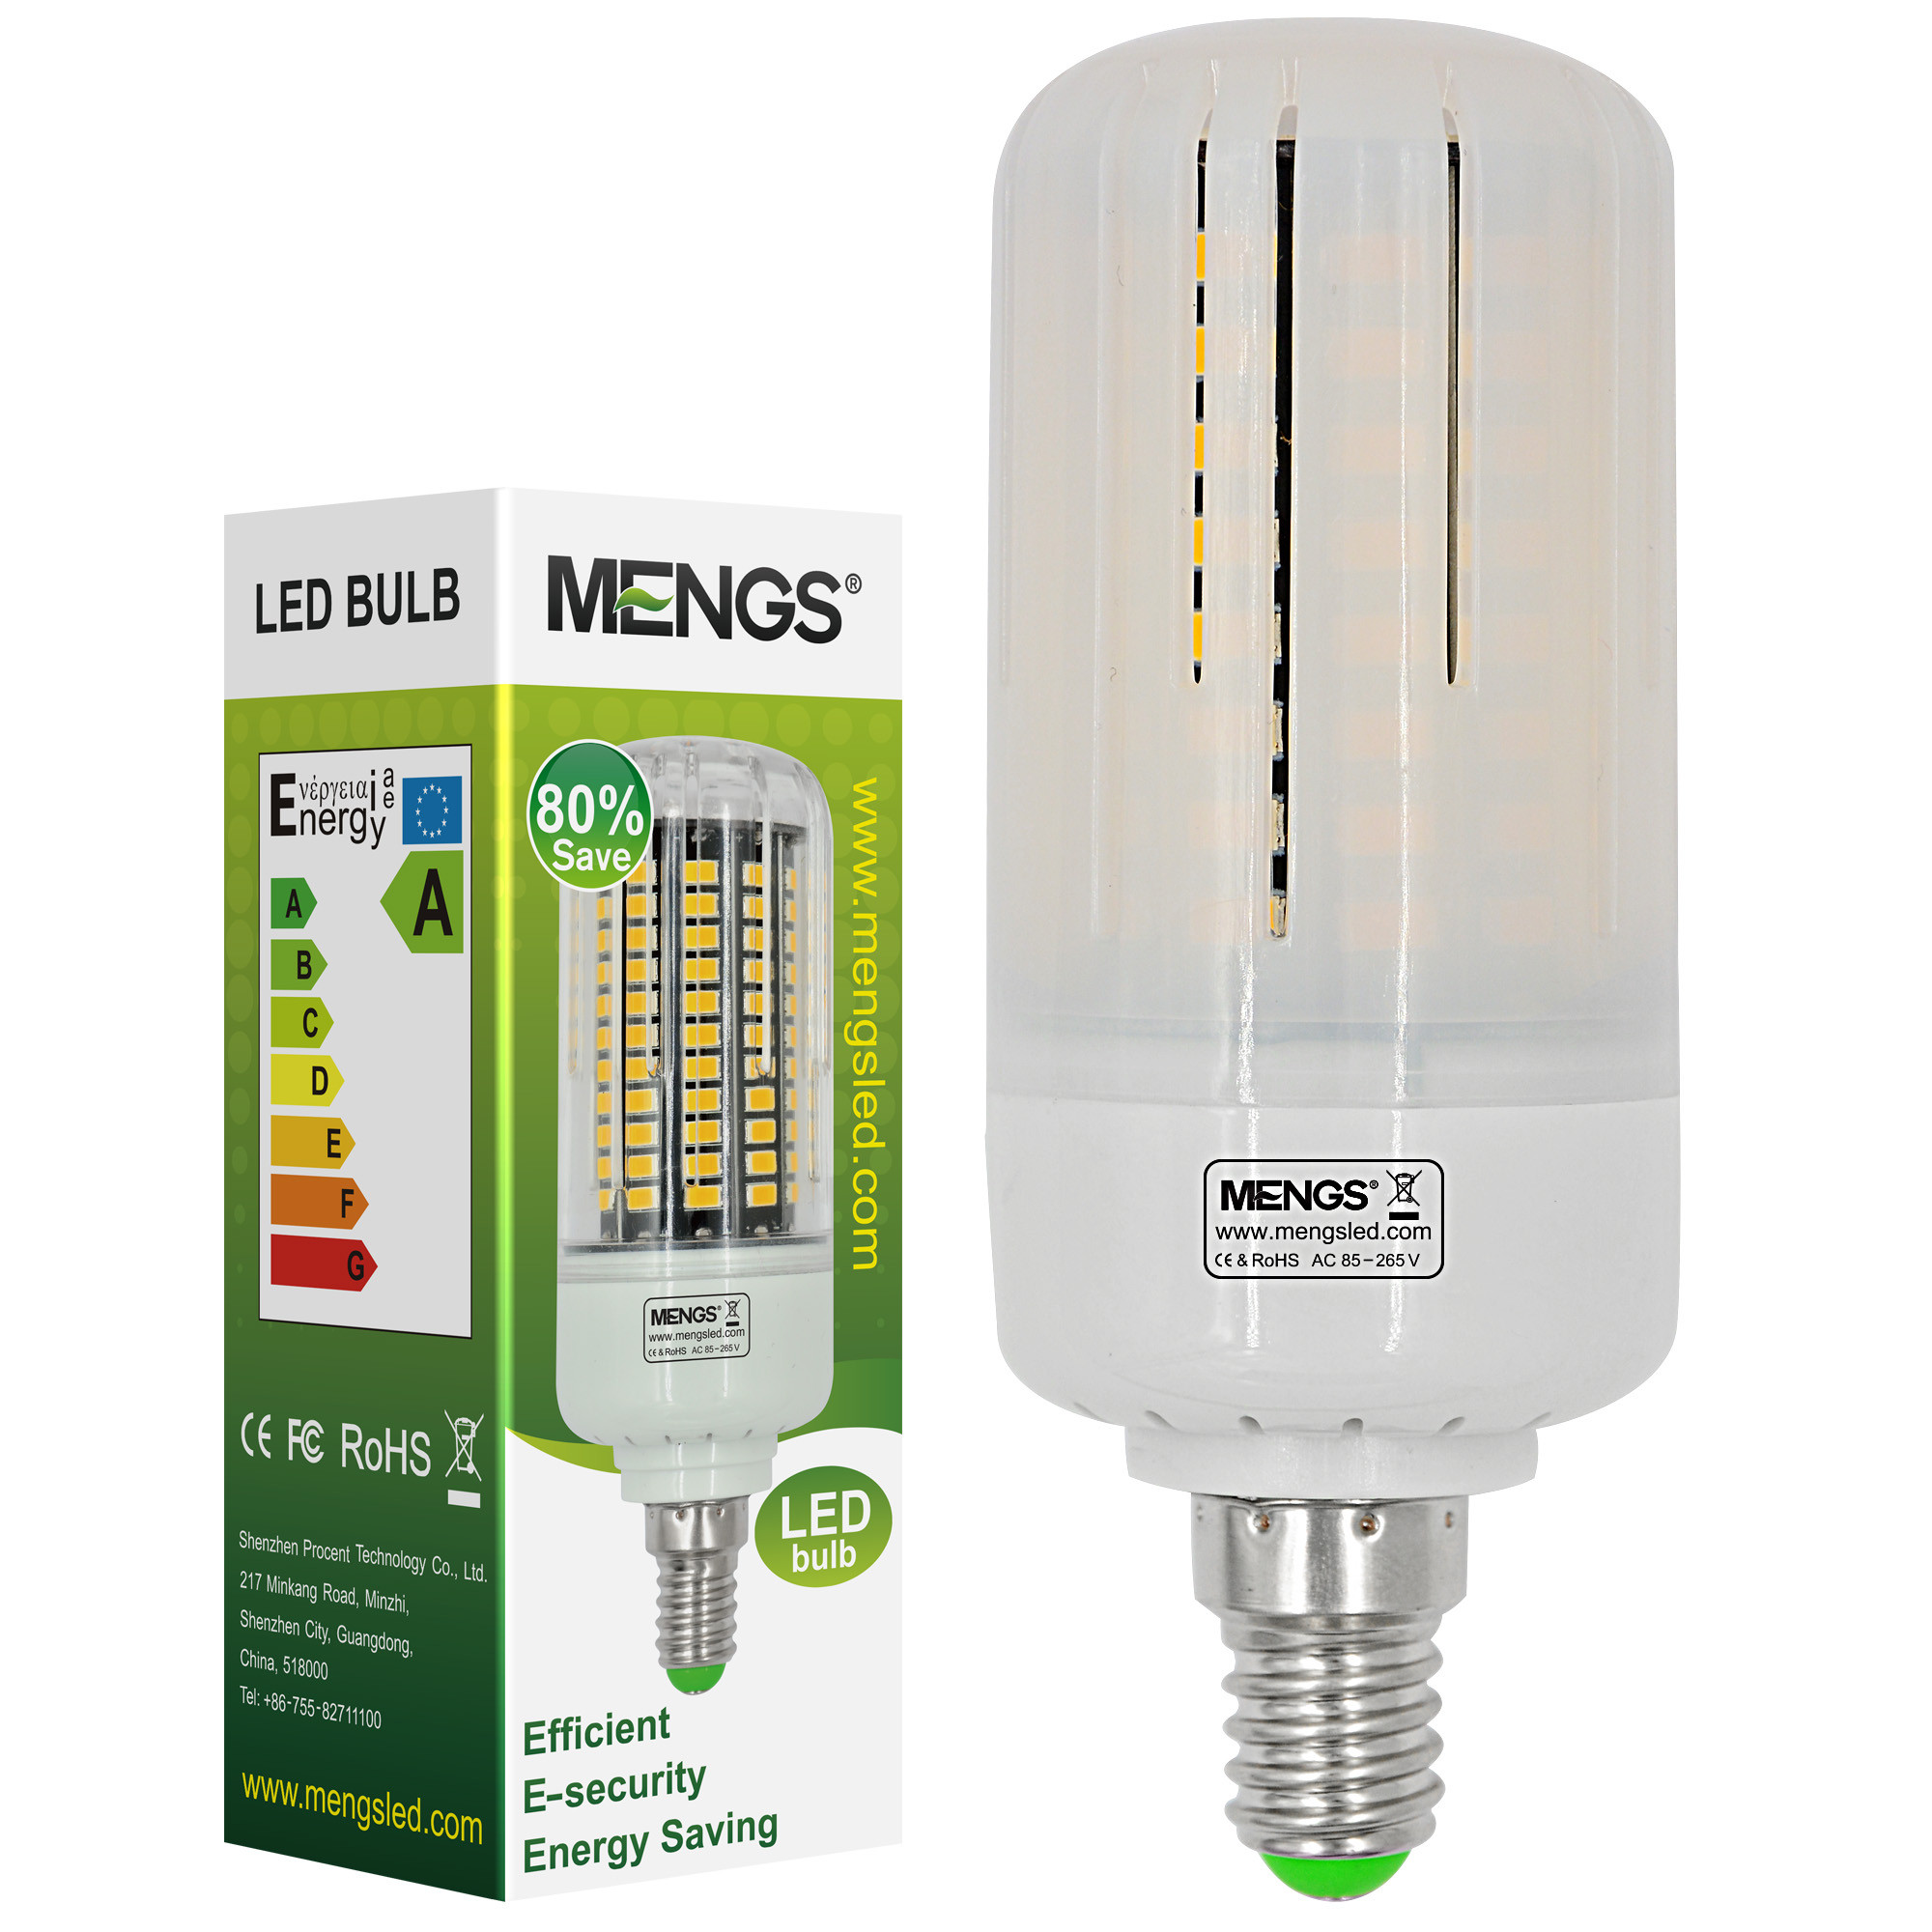 MENGS® Anti-Strobe E14 12W LED Corn Light 100x 5736 SMD LB LED Bulb Lamp In Warm White Energy-Saving Lamp